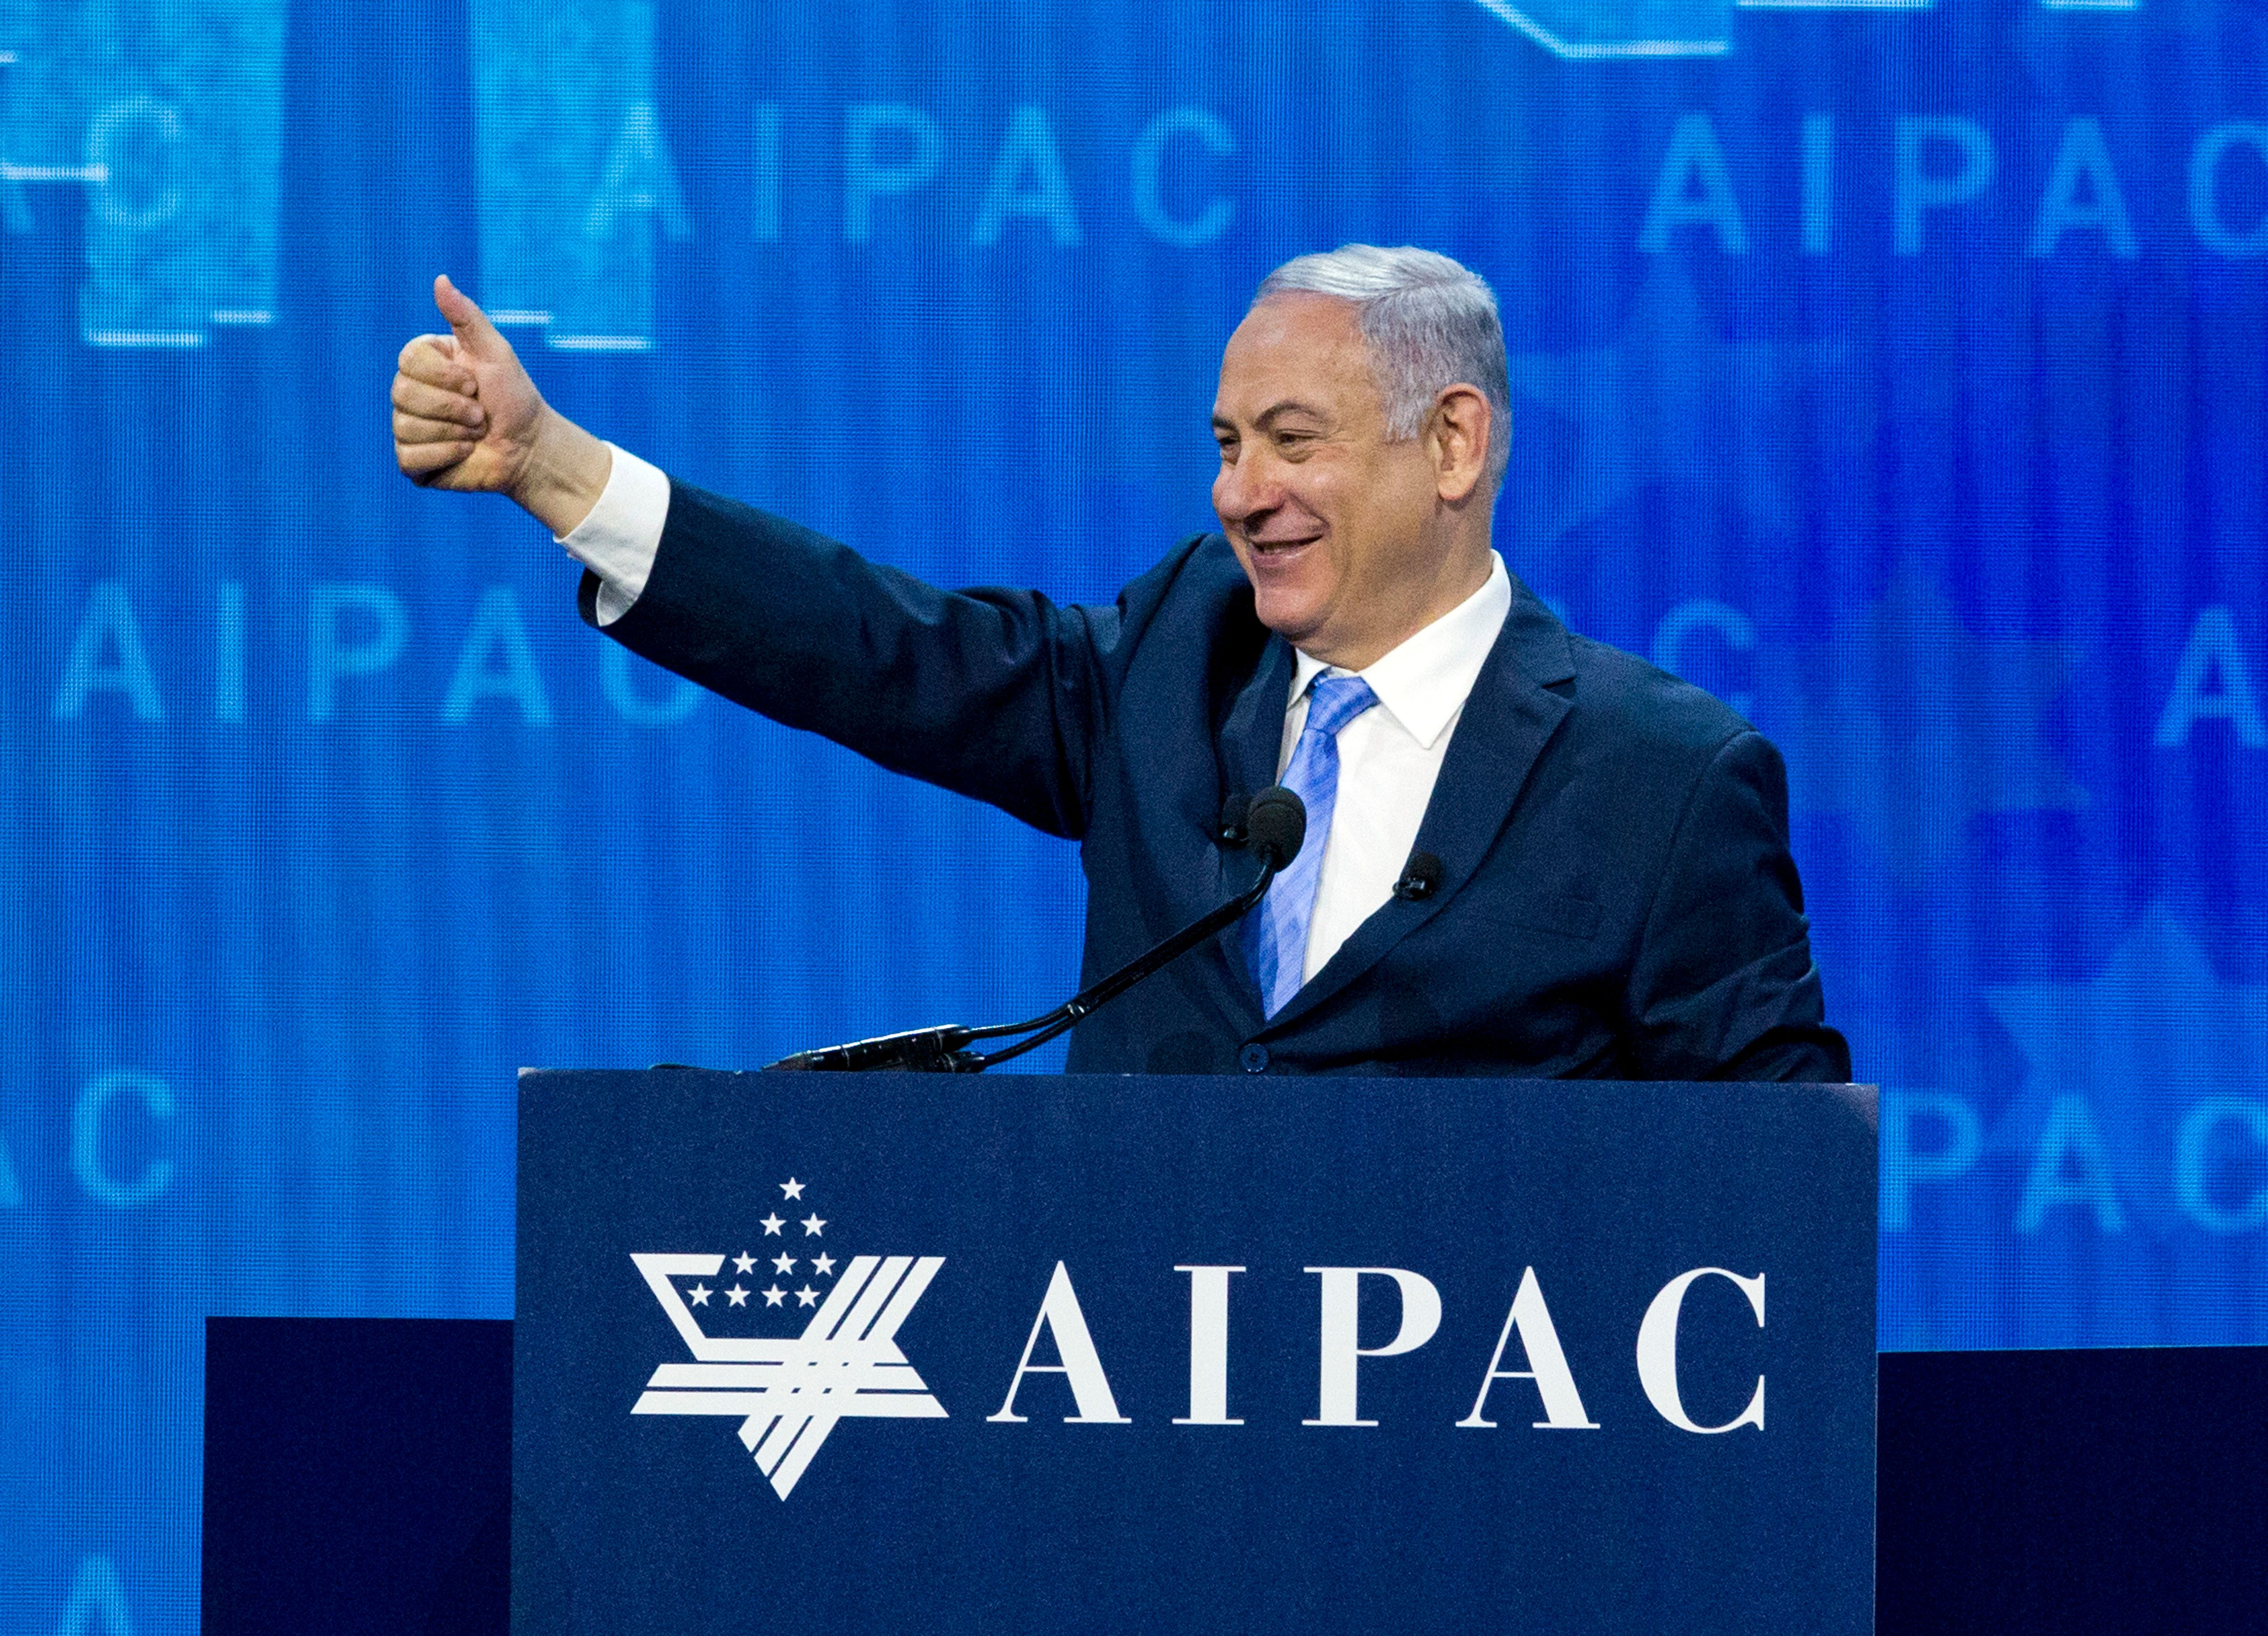 Israeli Prime Minister Benjamin Netanyahu speaks at the 2018 American Israel Public Affairs Committee (AIPAC) policy conference, at Washington Convention Center, Tuesday, March 6, 2018, in Washington. (AP Photo/Jose Luis Magana)